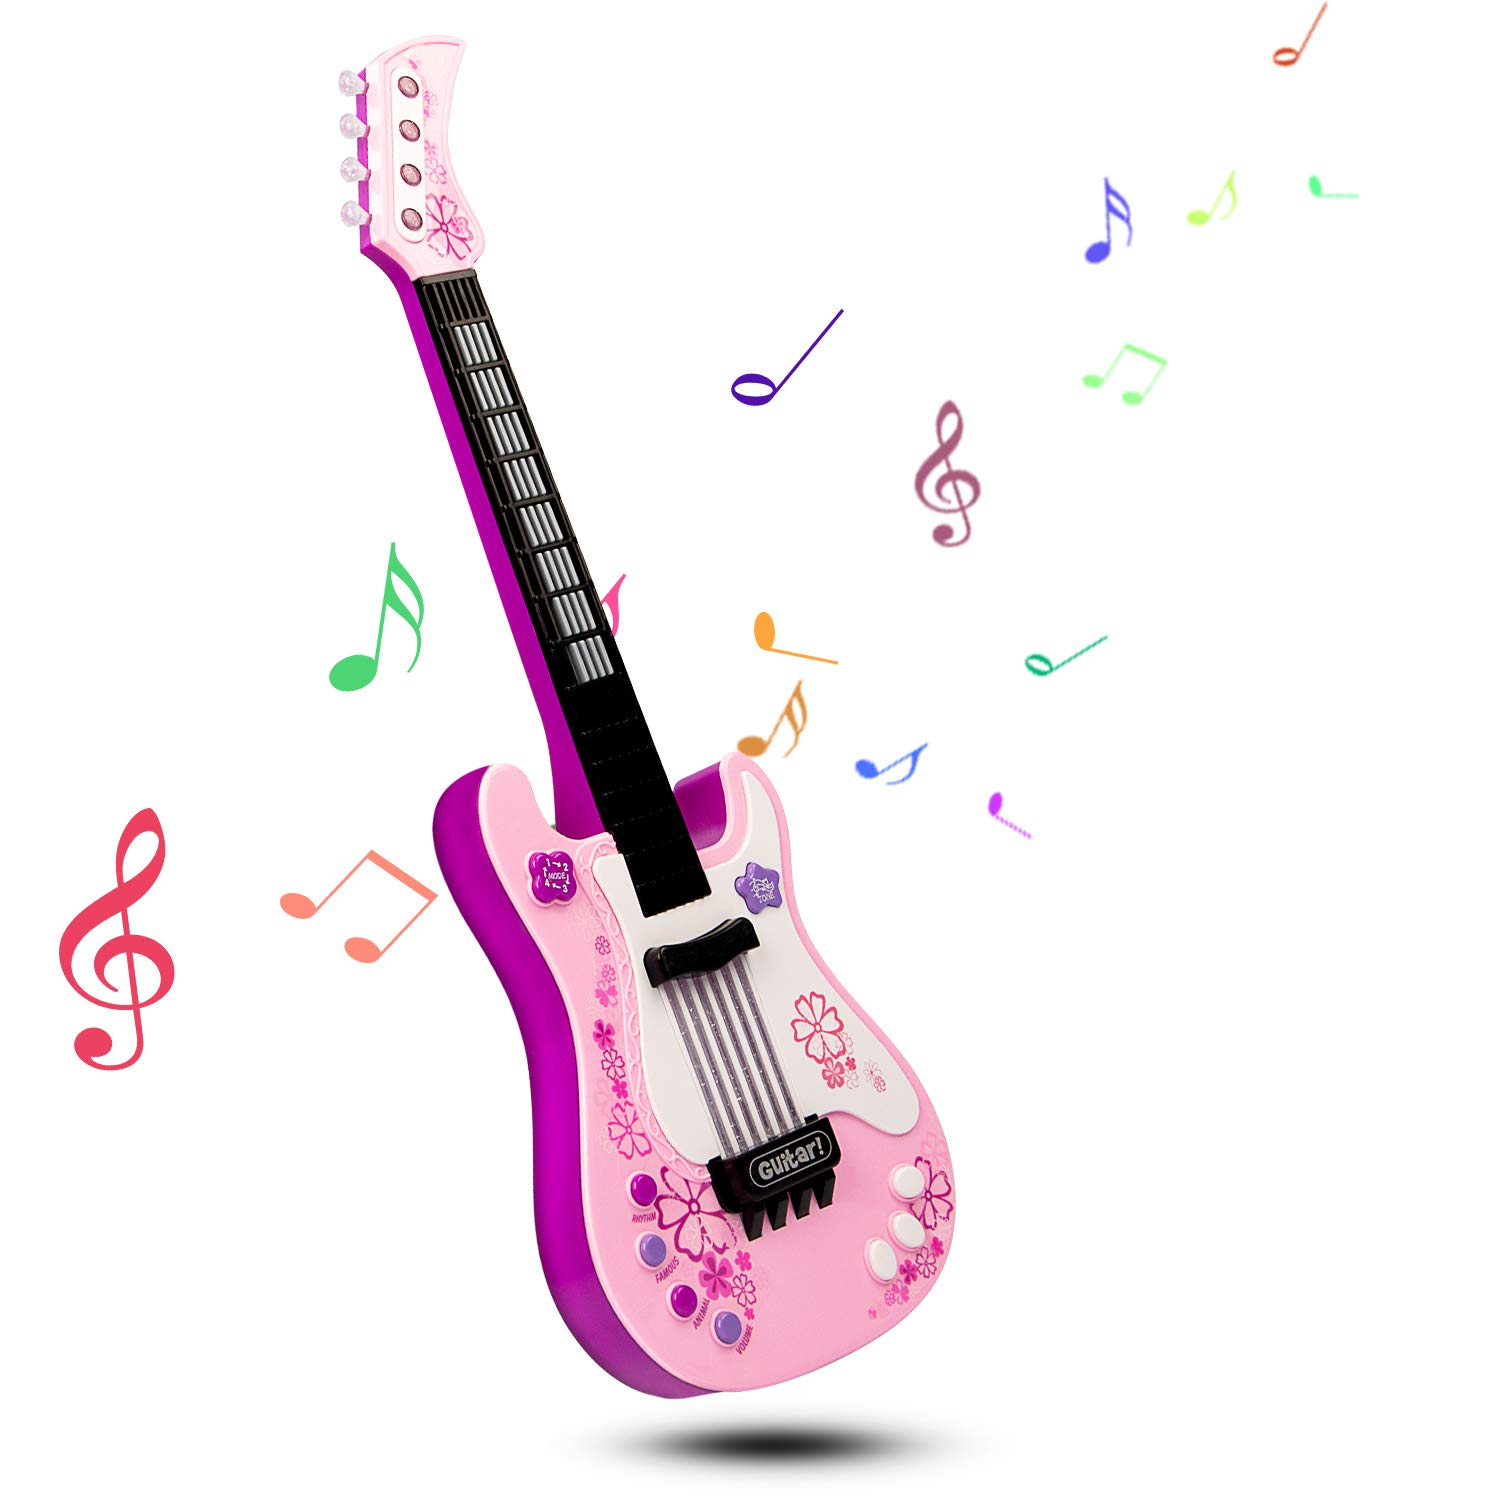 SAOCOOL Electric Guitar for Girls, Multifunction Kids Guitar with Colored Lights Effect, No String Musical Instruments Educational Toy for Girls and Boys (Pink)